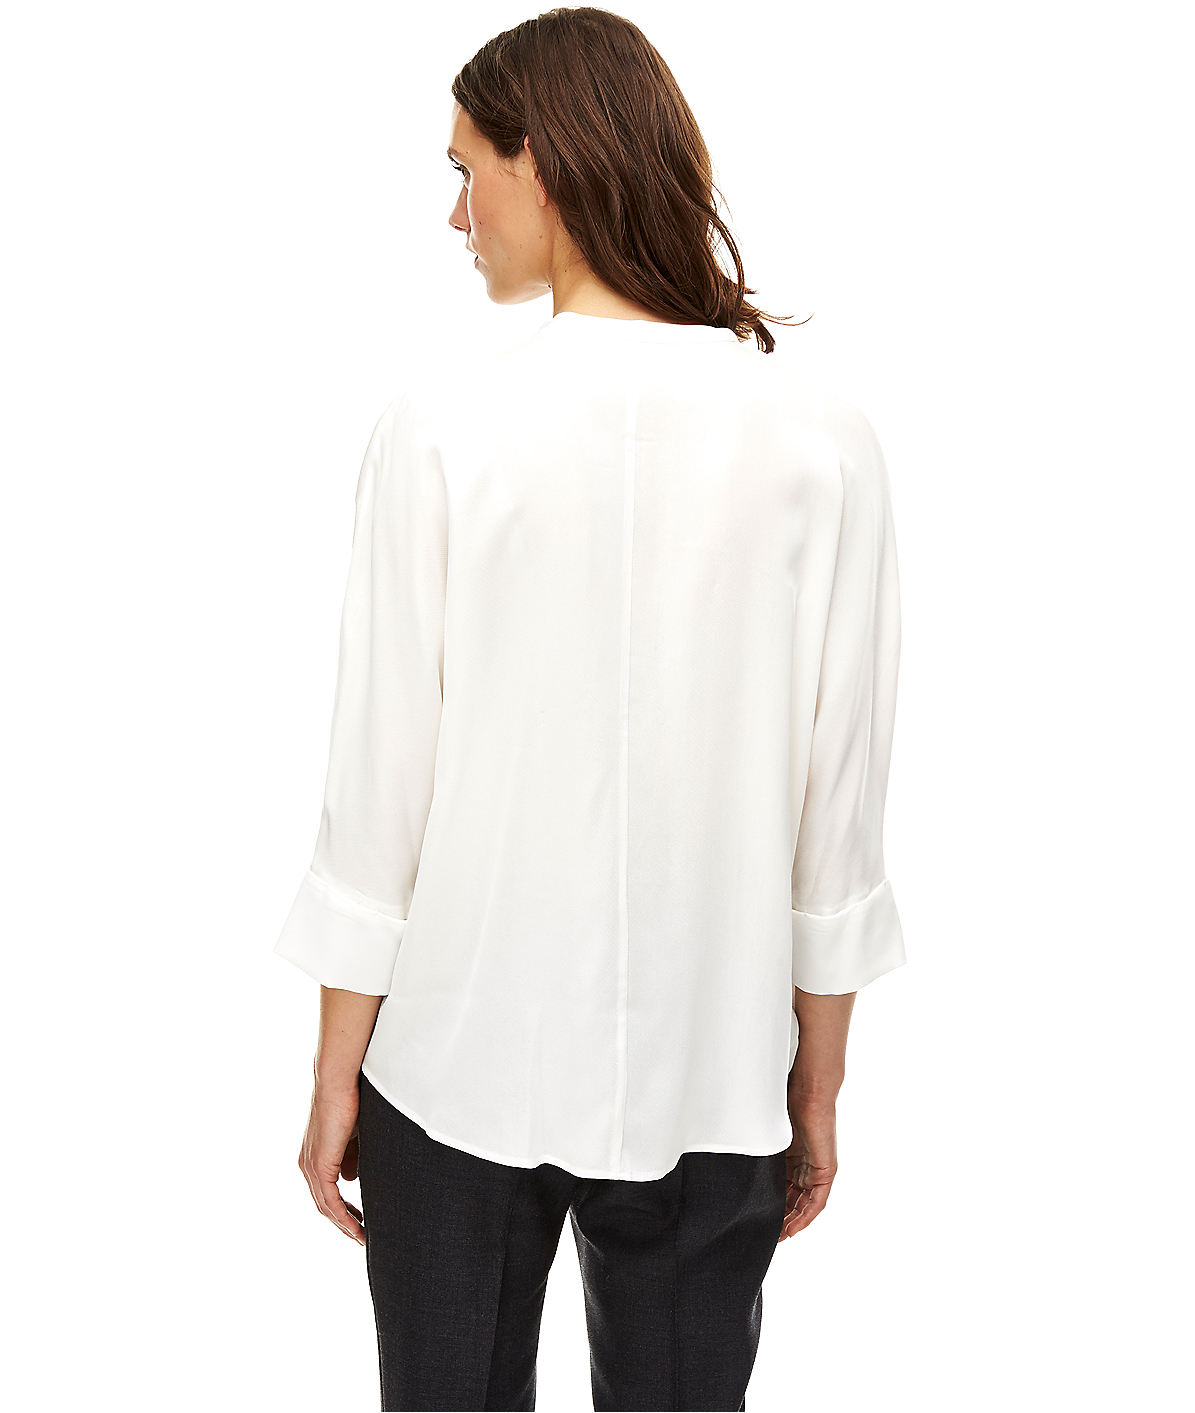 liebeskind berlin blouse with mullet style hem in white lyst. Black Bedroom Furniture Sets. Home Design Ideas